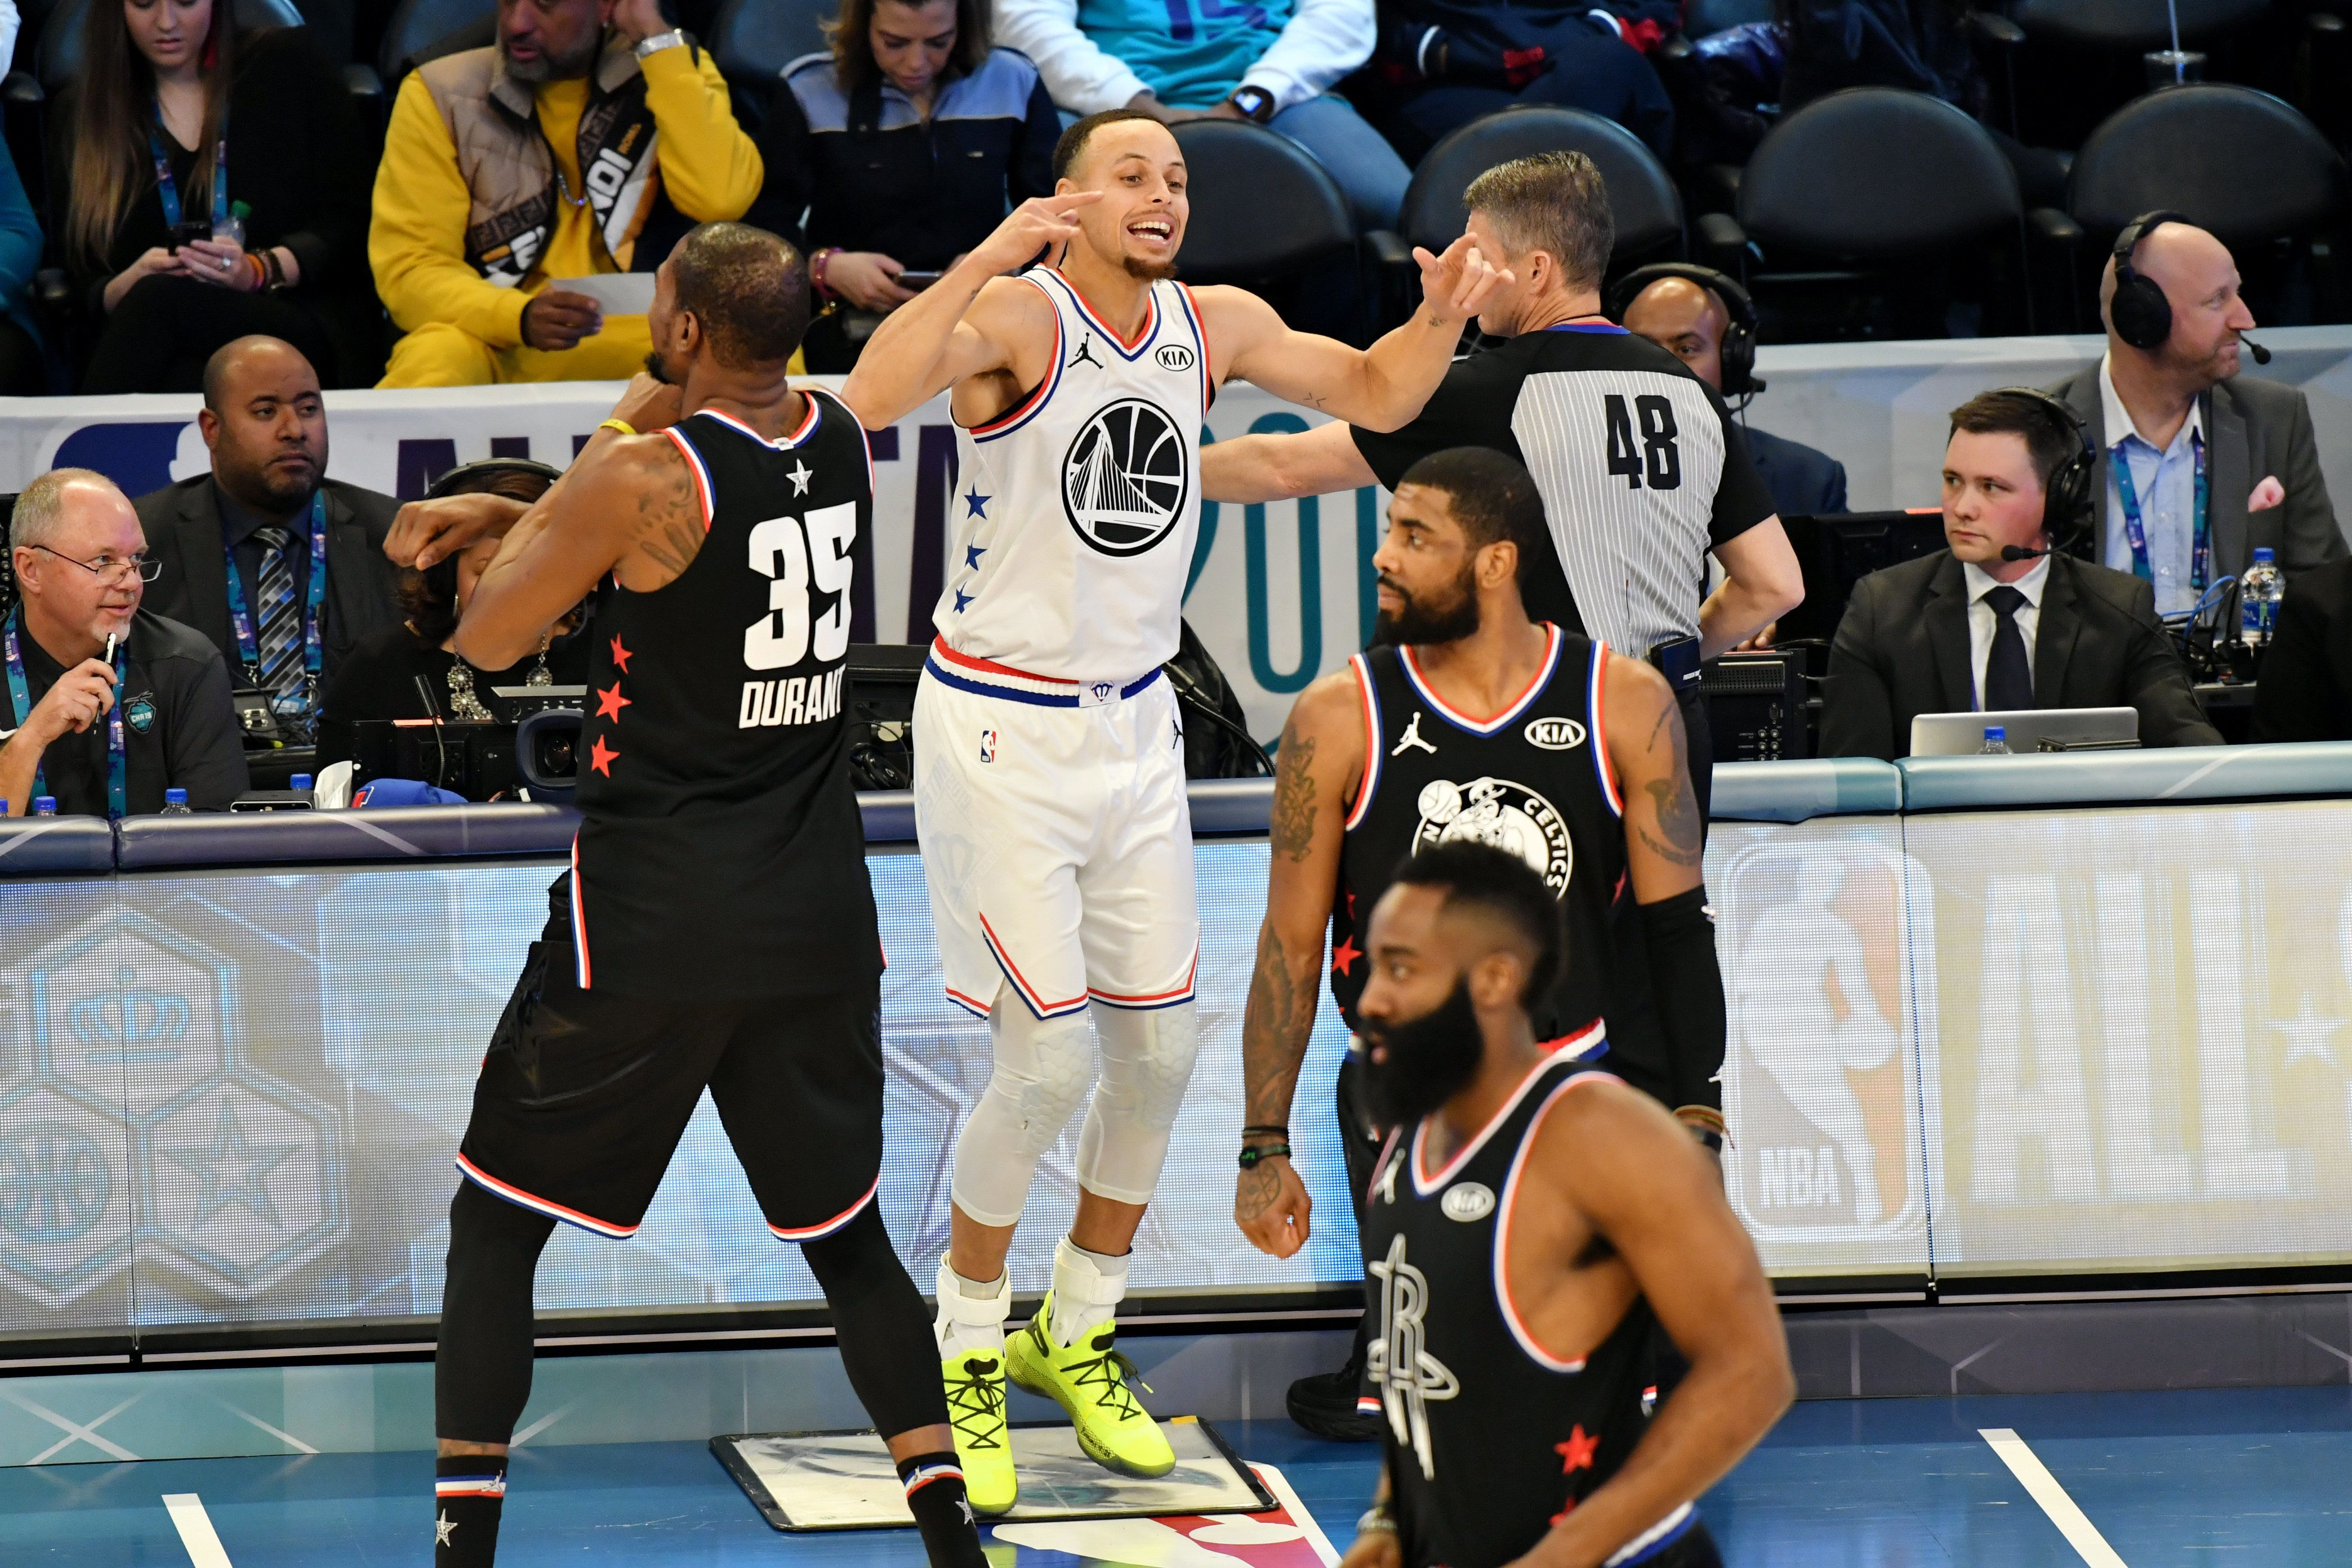 Steph Curry's Bounce Pass In The NBA All-Star Game Was Beautiful